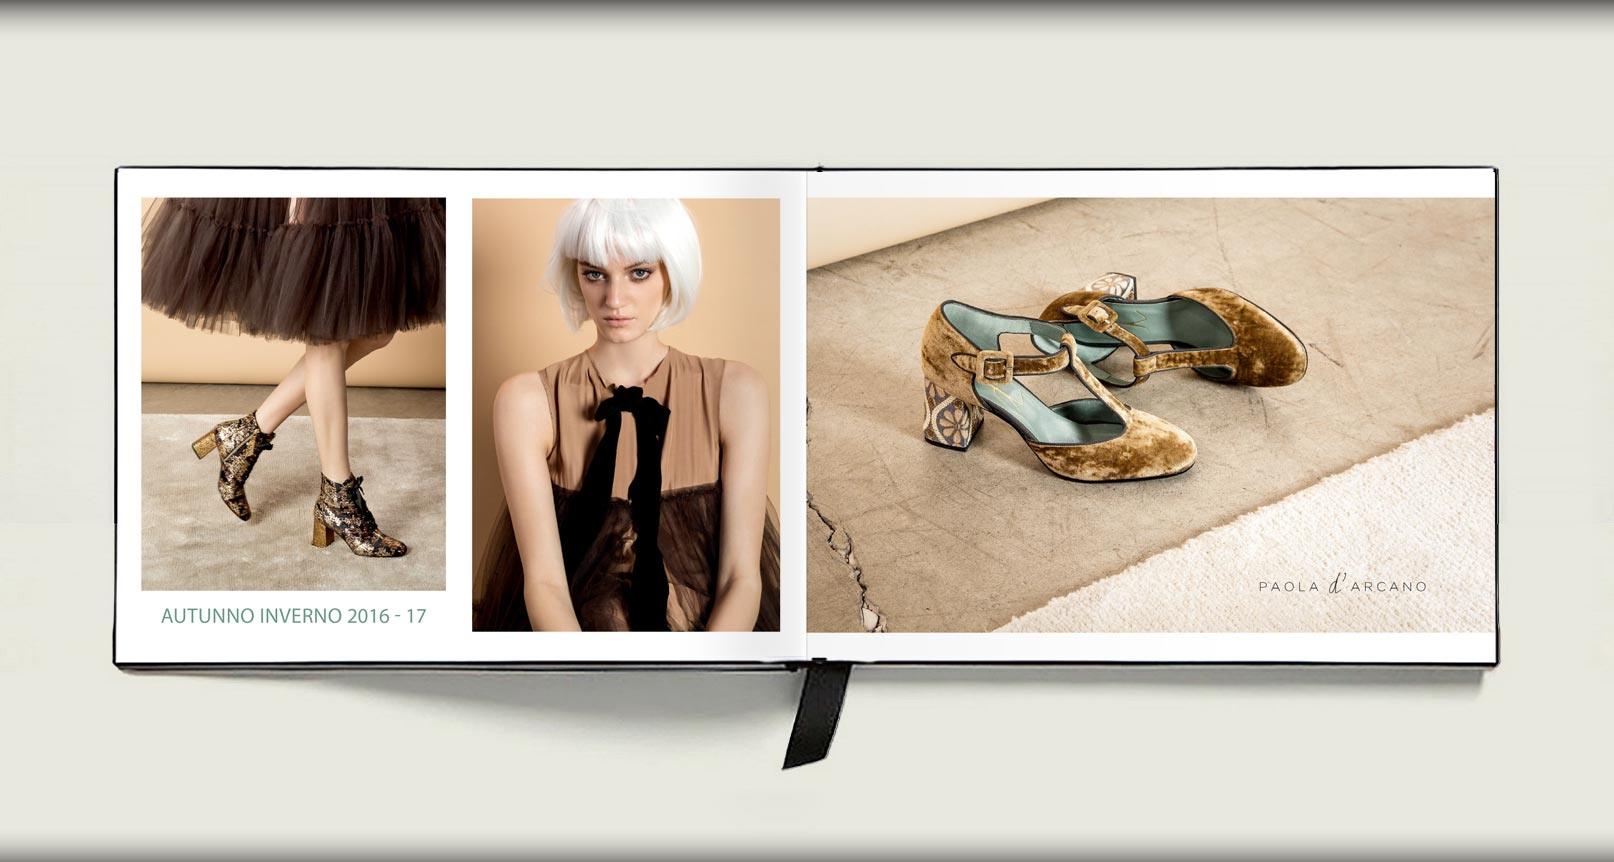 Story Paola D'Arcano Shoes Made in Italy - 11